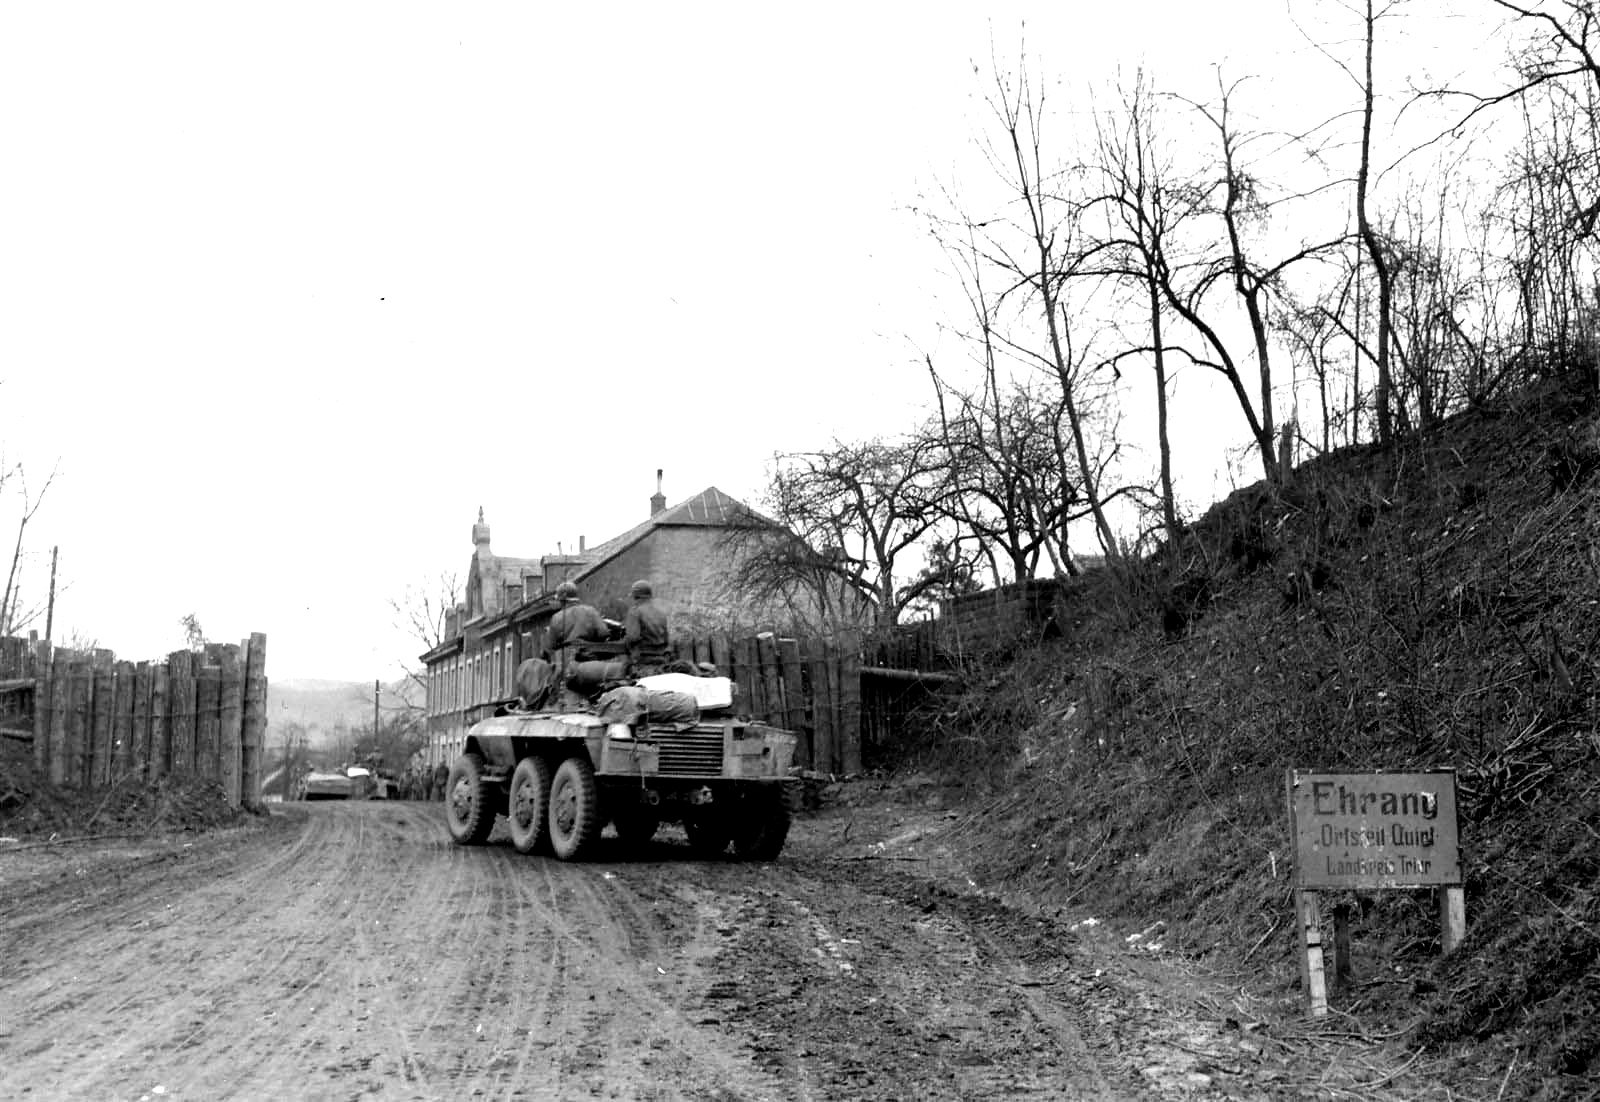 M8 of the 10th Armored Spearhead reaches Quint Germany 9 March 1945